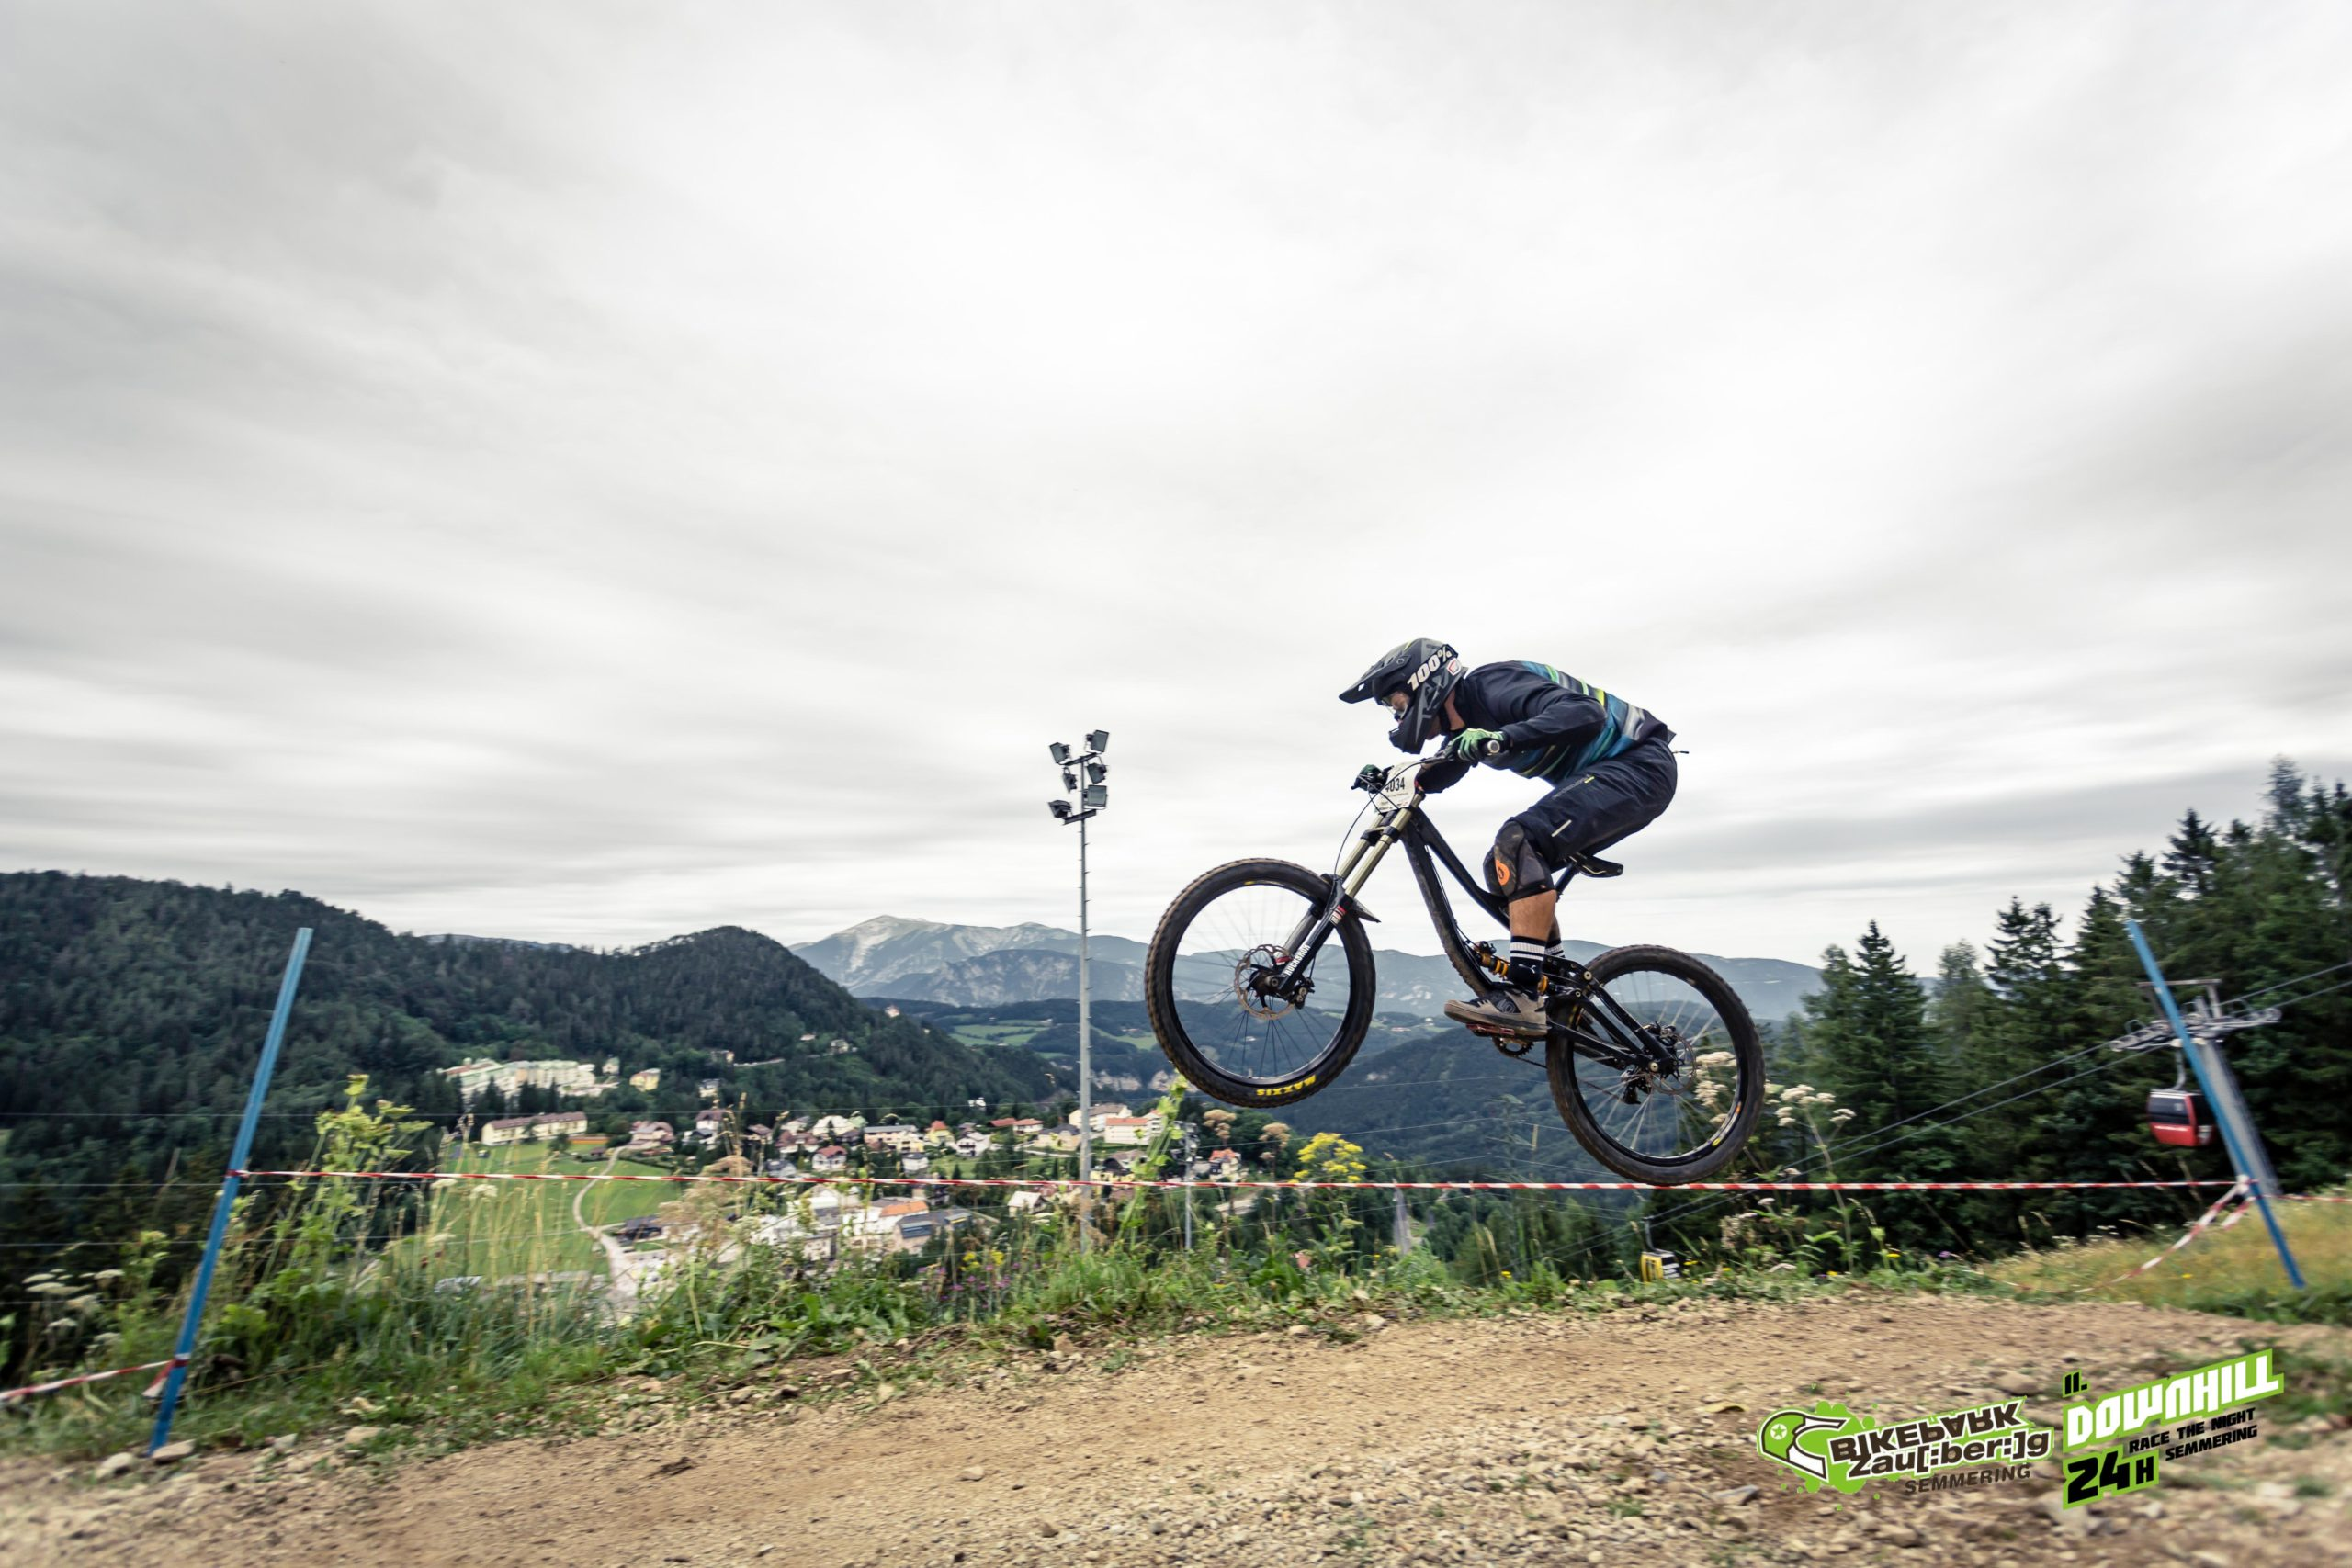 Bikepark Semmering 24H DH Race the Night 2019 ©BikeparkSemmering 1 scaled